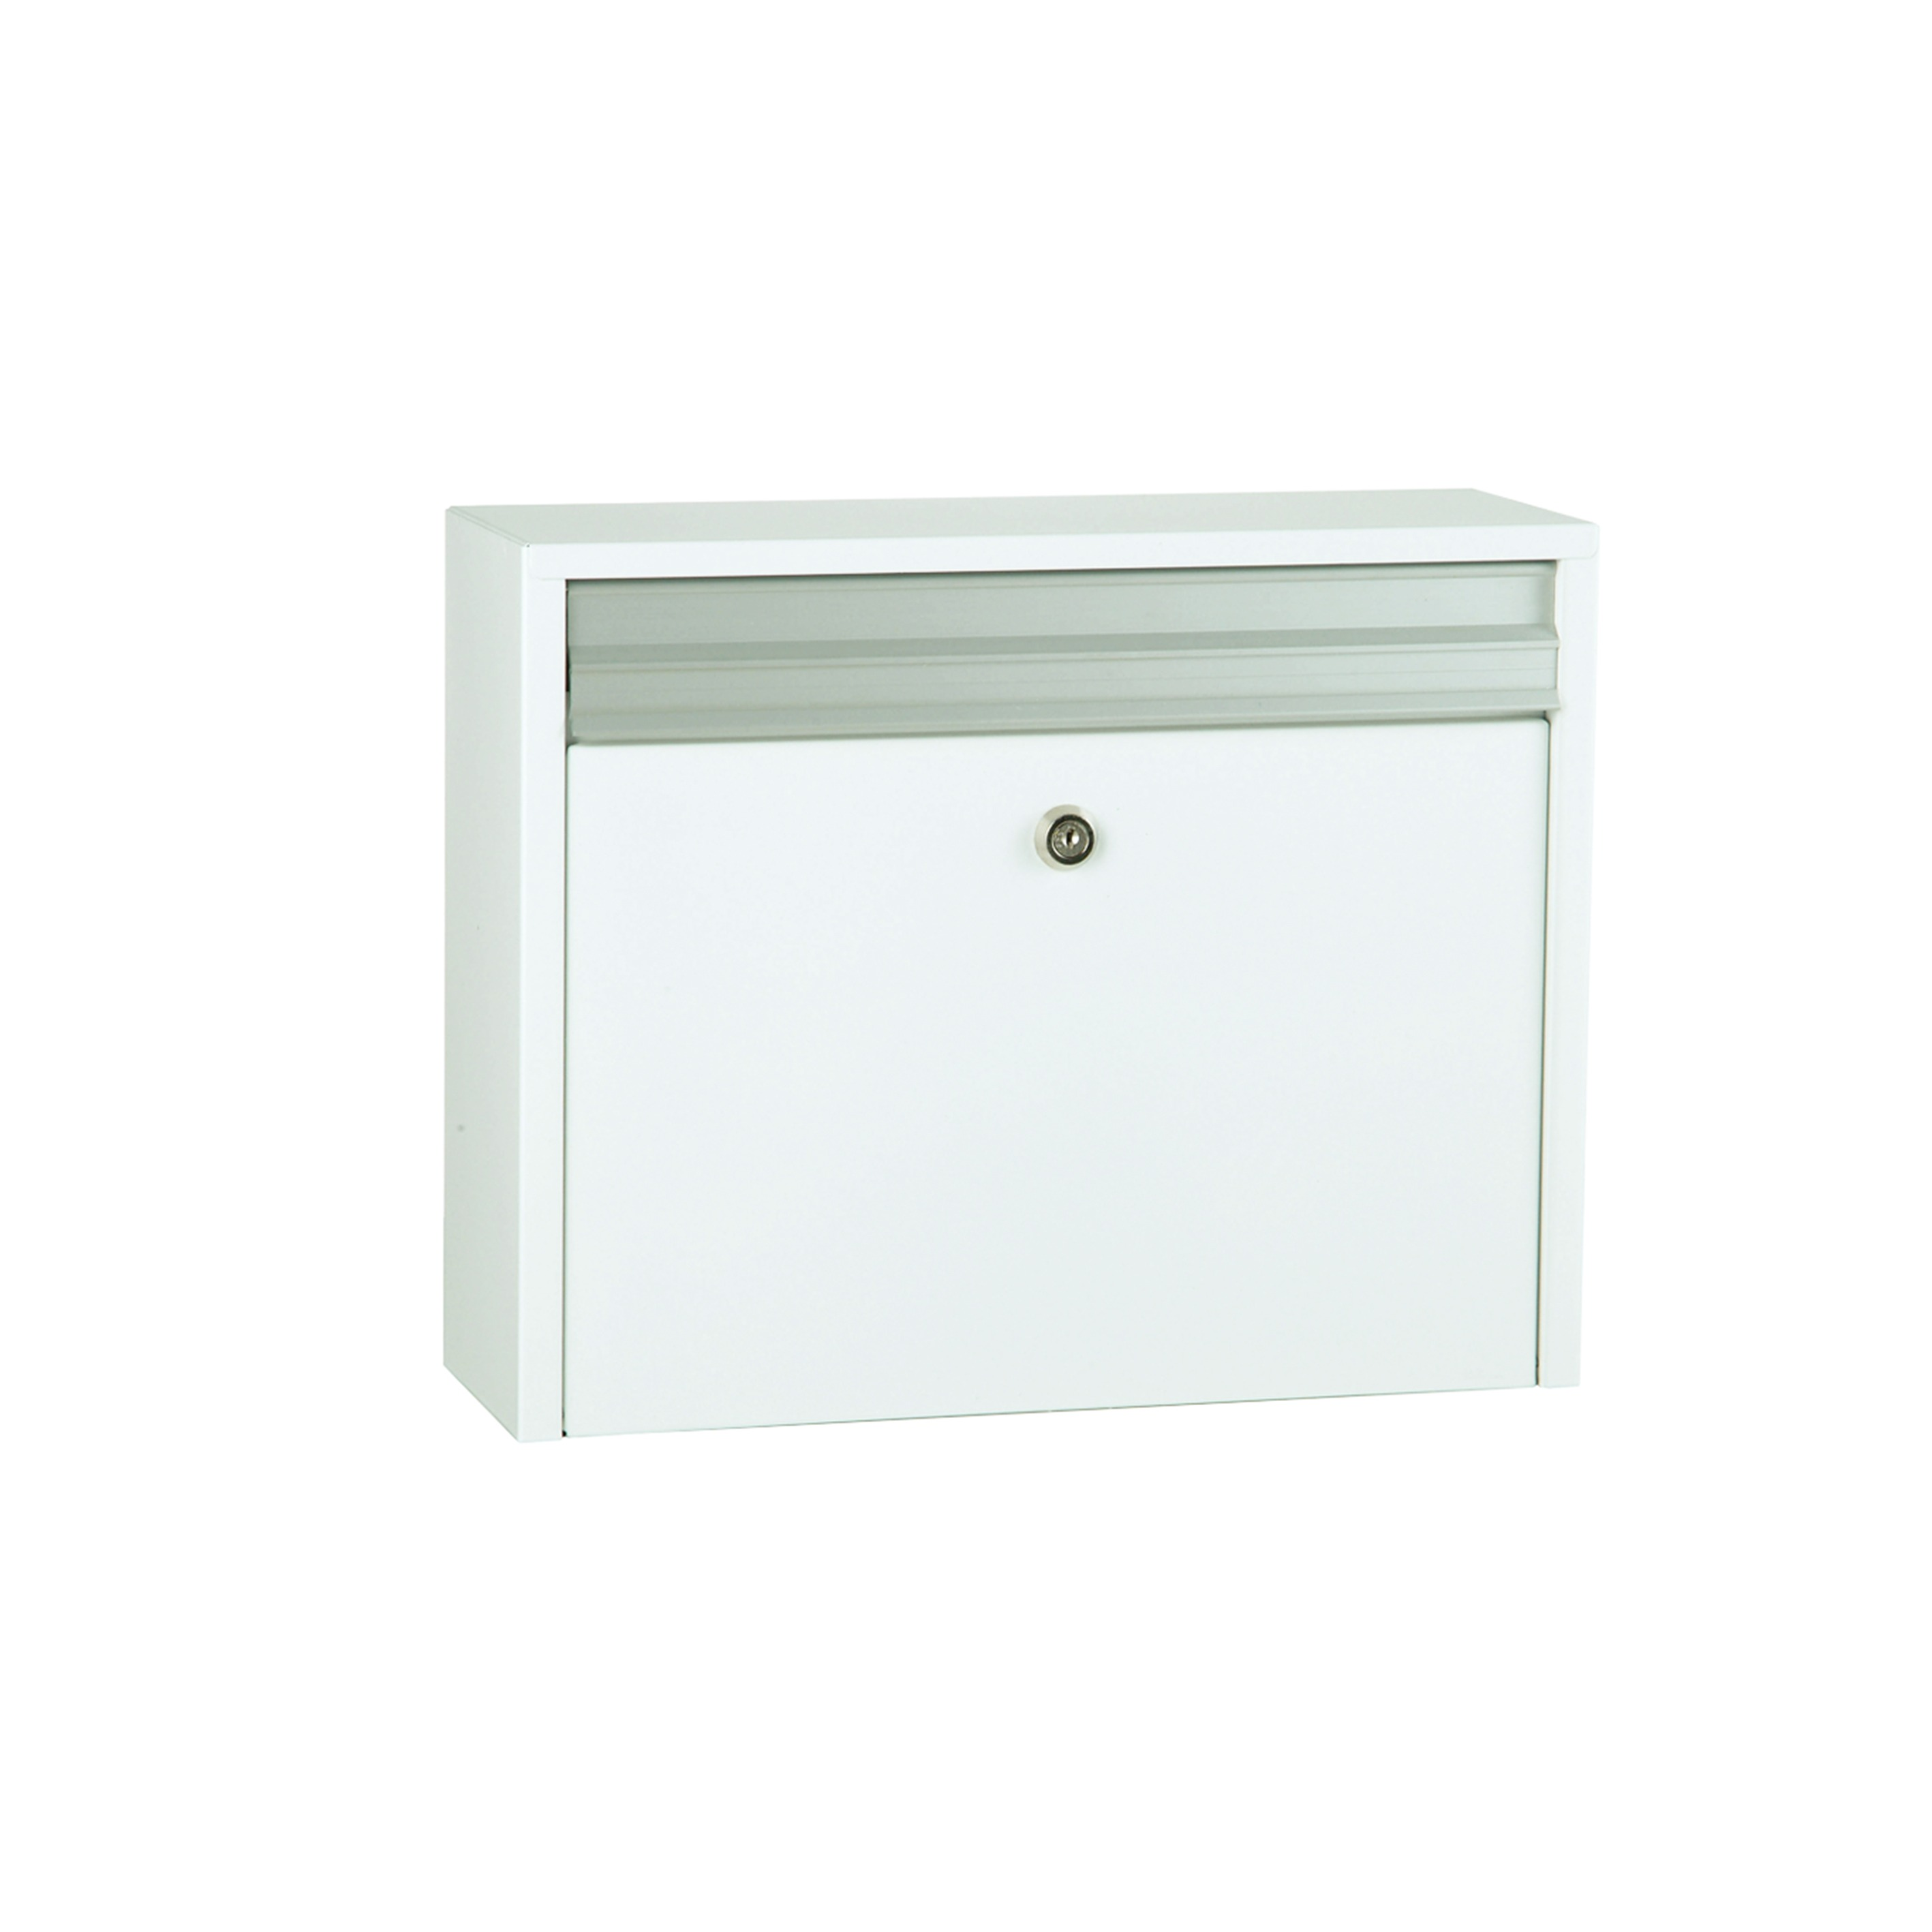 MEFA Minuet - White / Galvanised Steel Flap